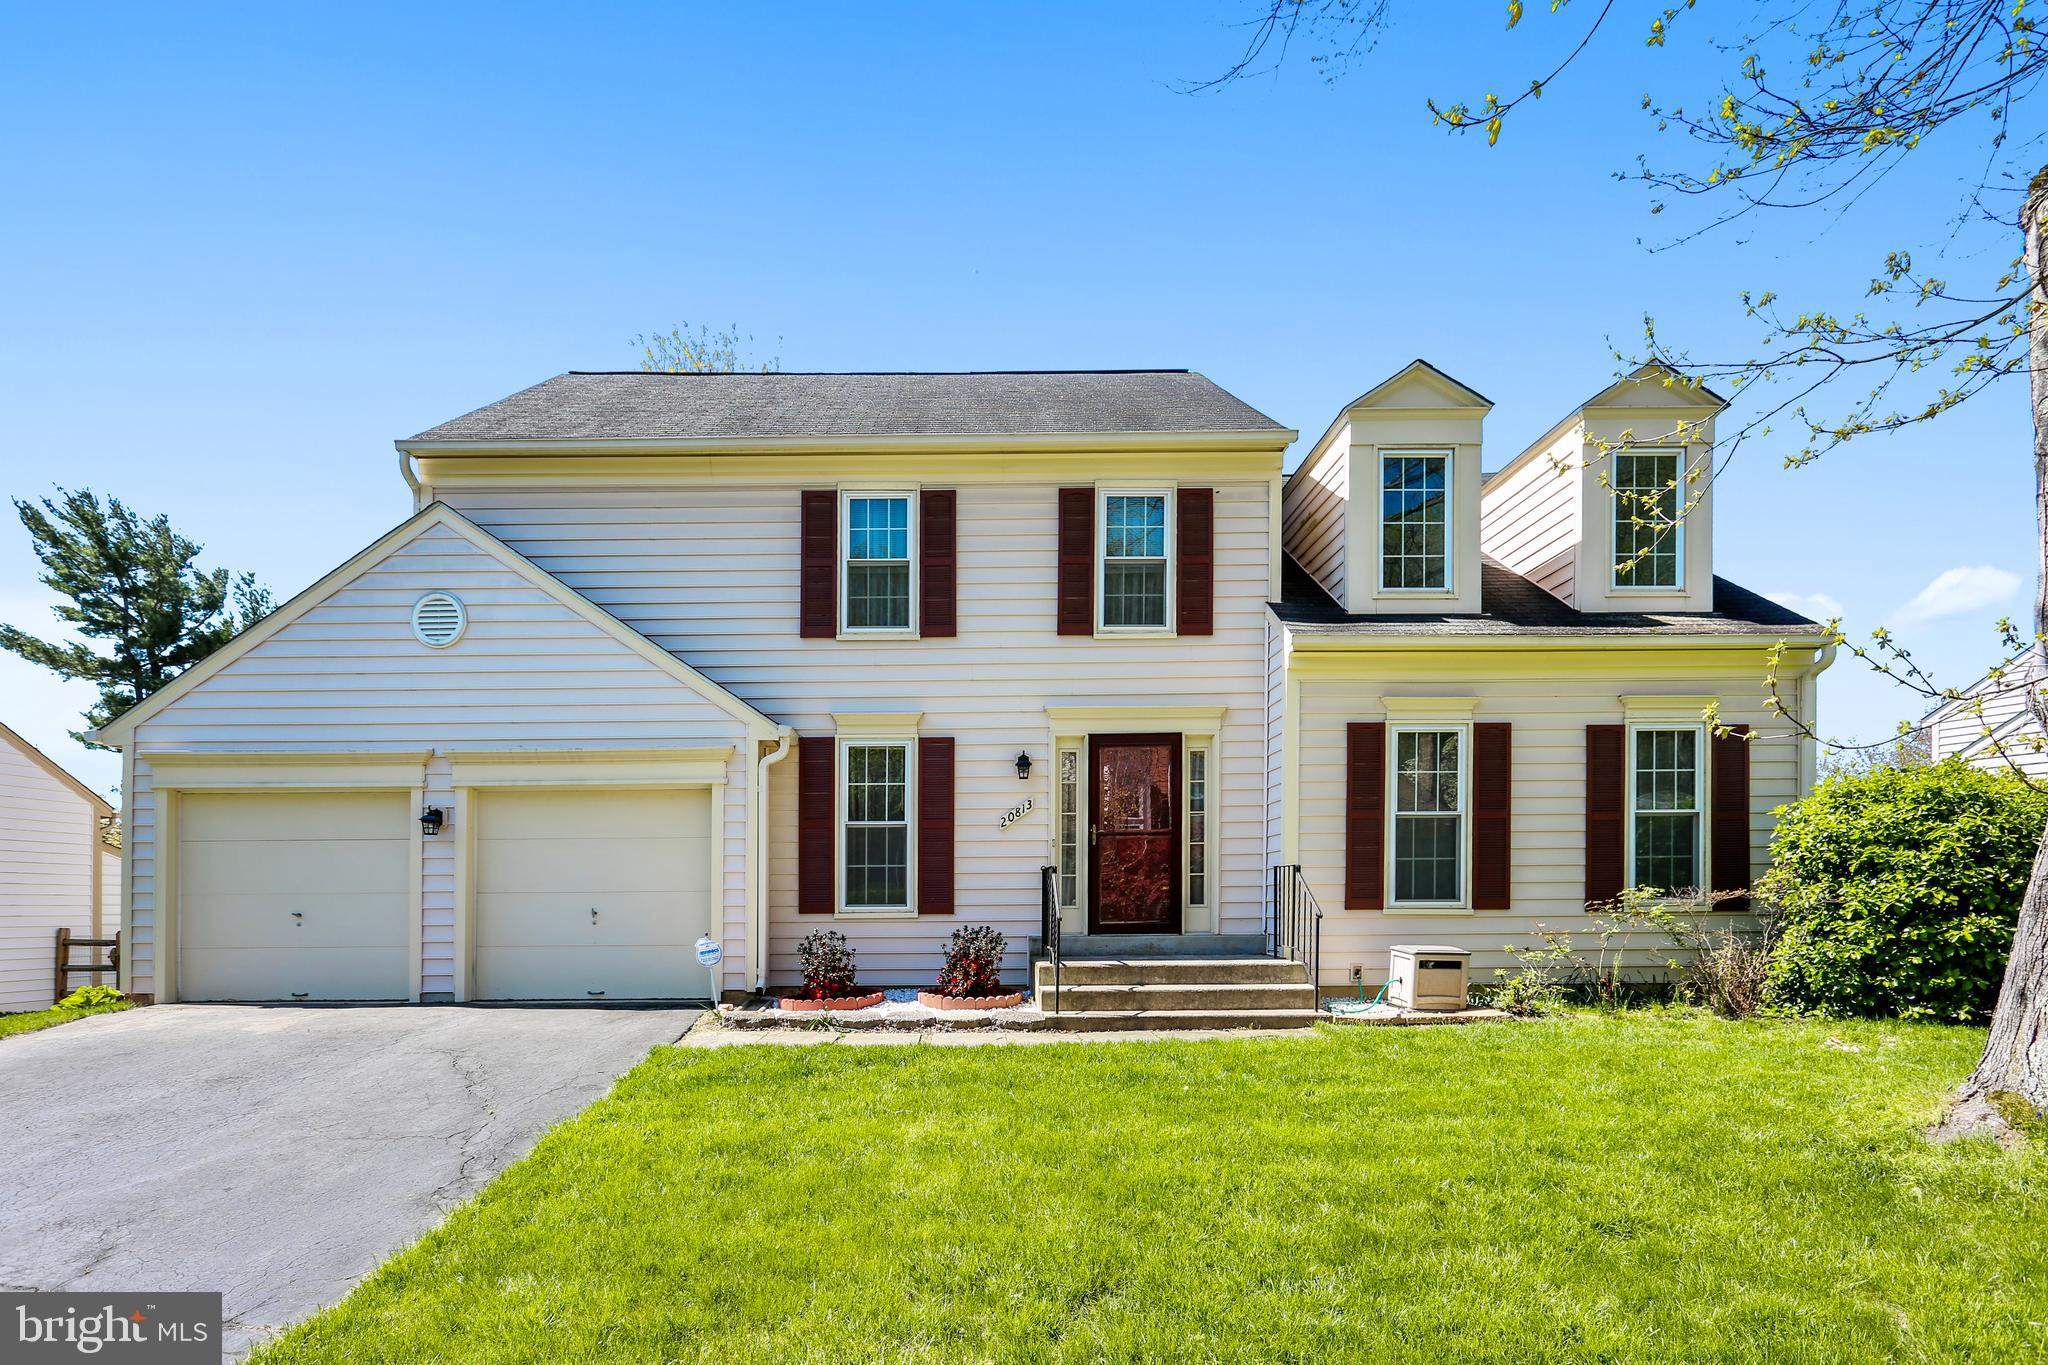 20813 Aspenwood Lane, Montgomery Village, MD 20886